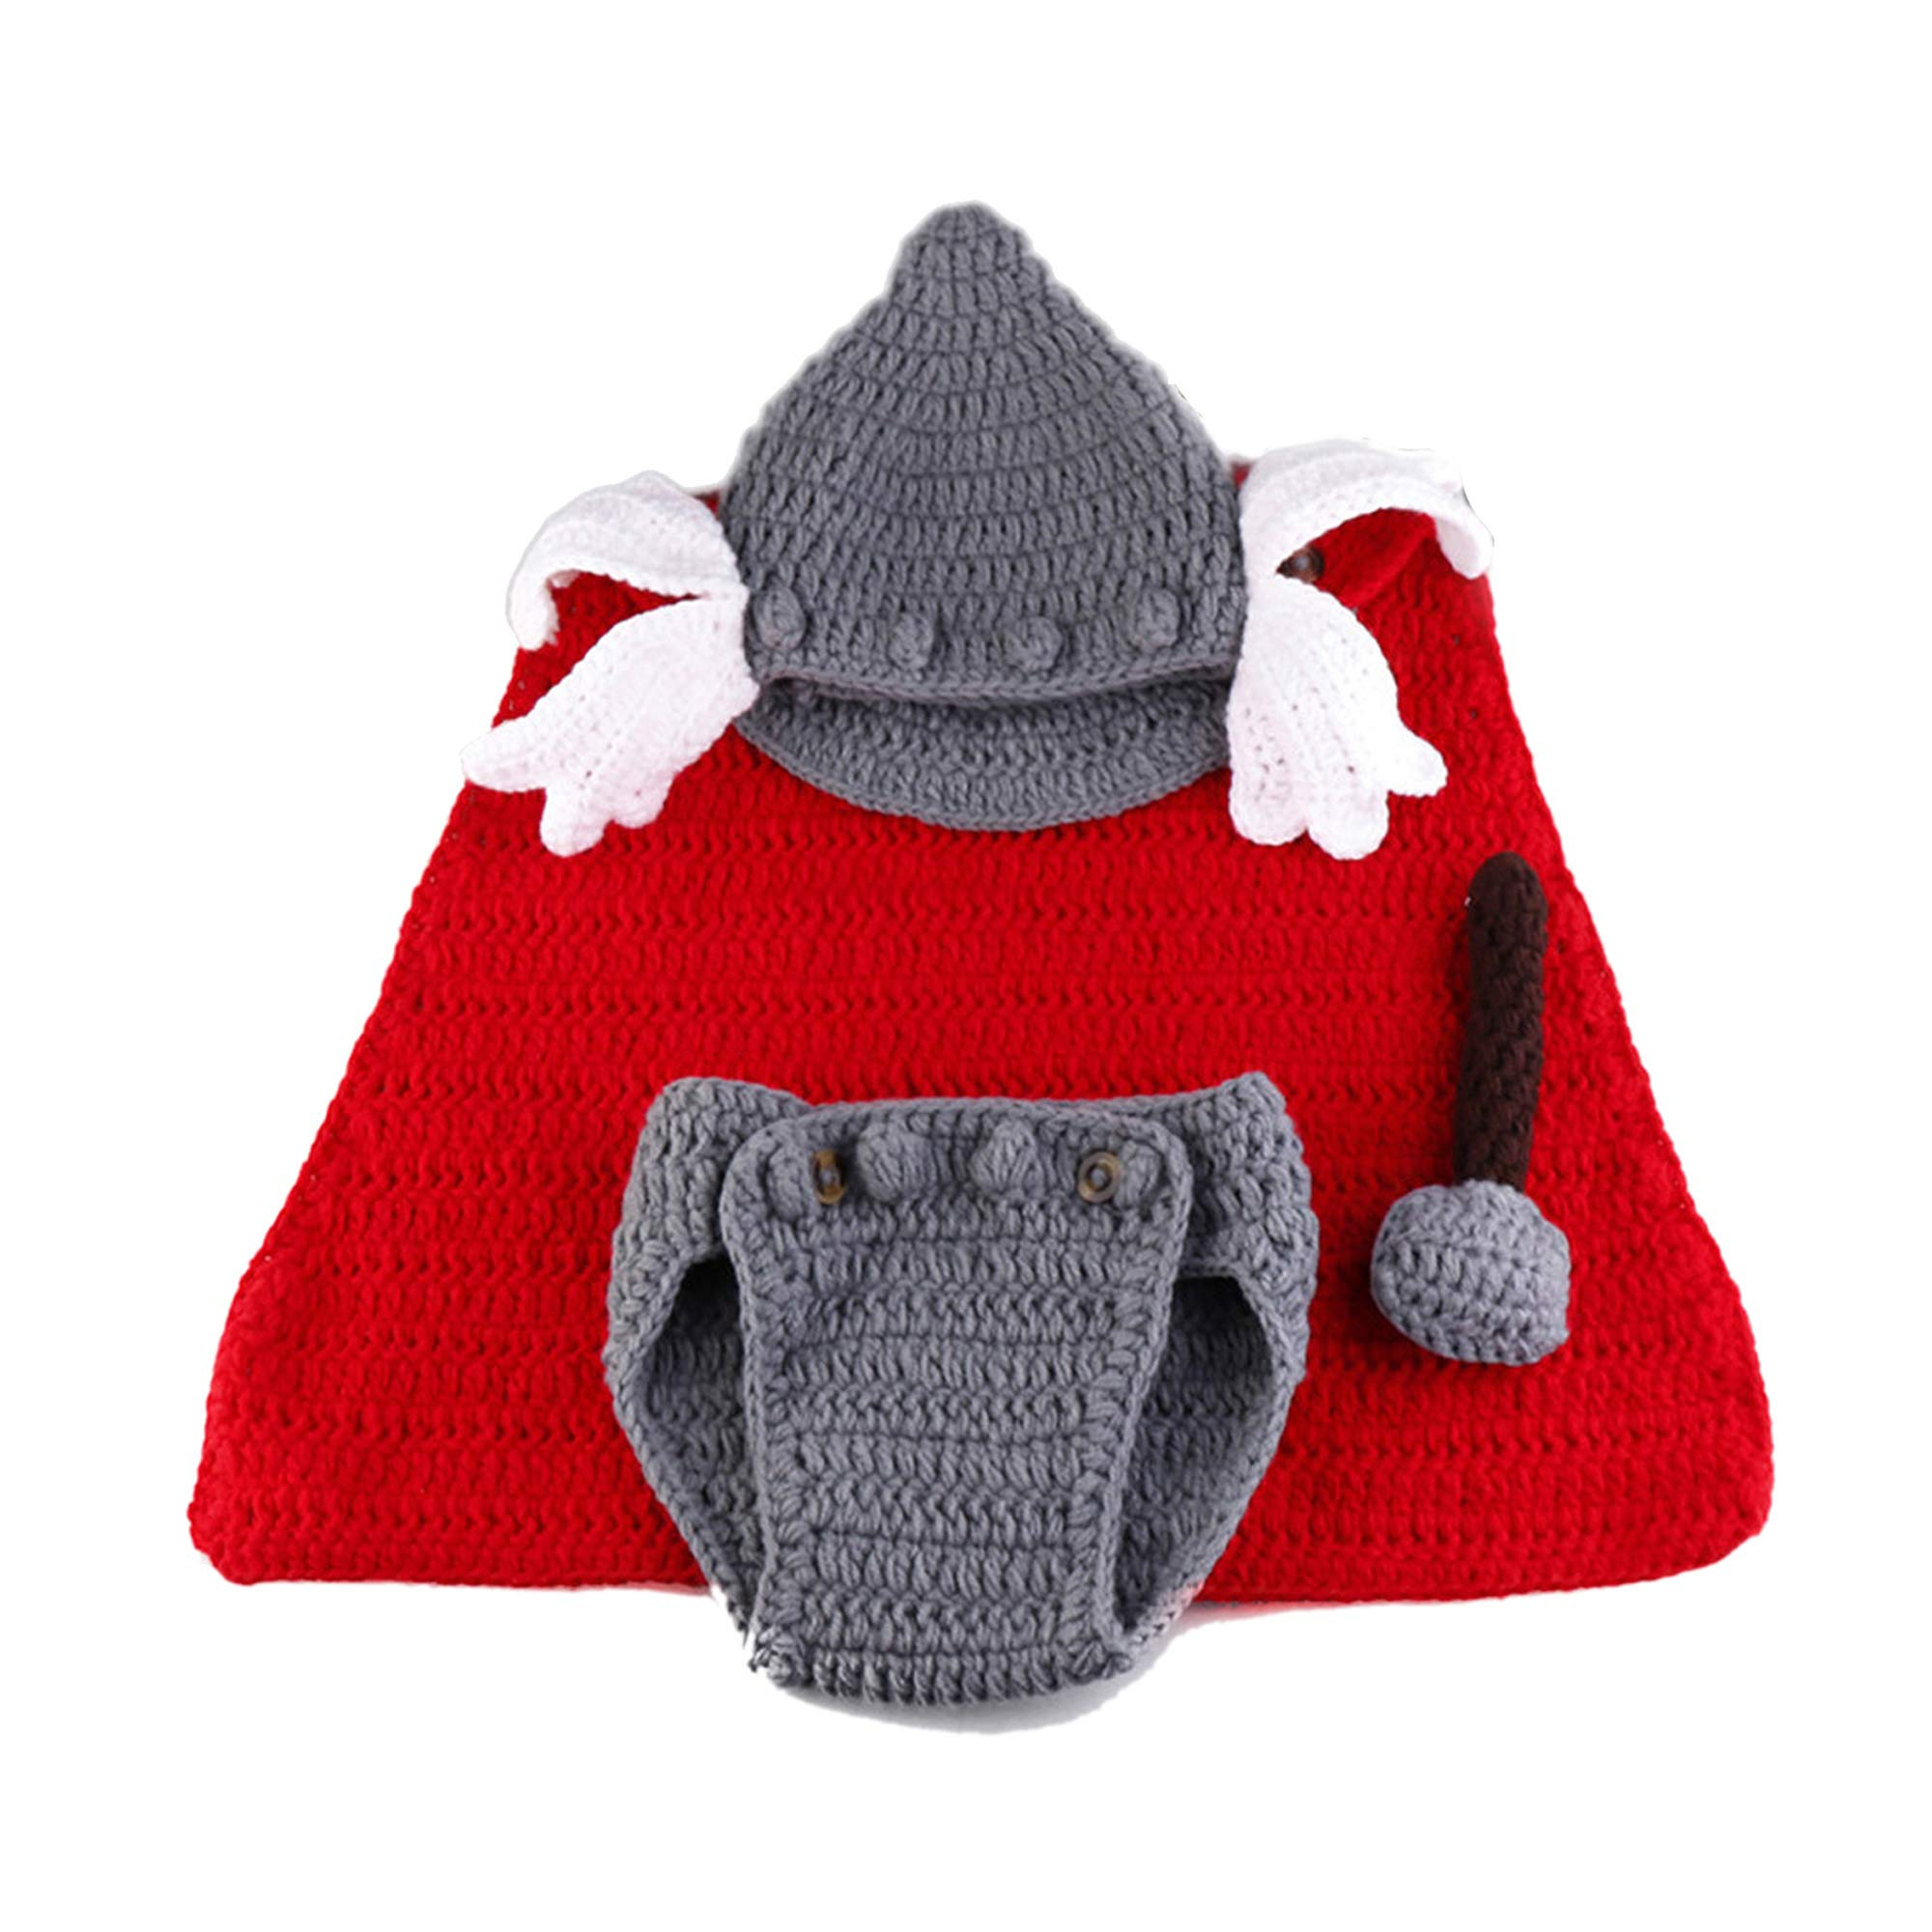 Leo Skye Thor Costume Crochet Knit Outfits 0 to 3 Months Newborn Photography Props (Thor) by Leo Skye